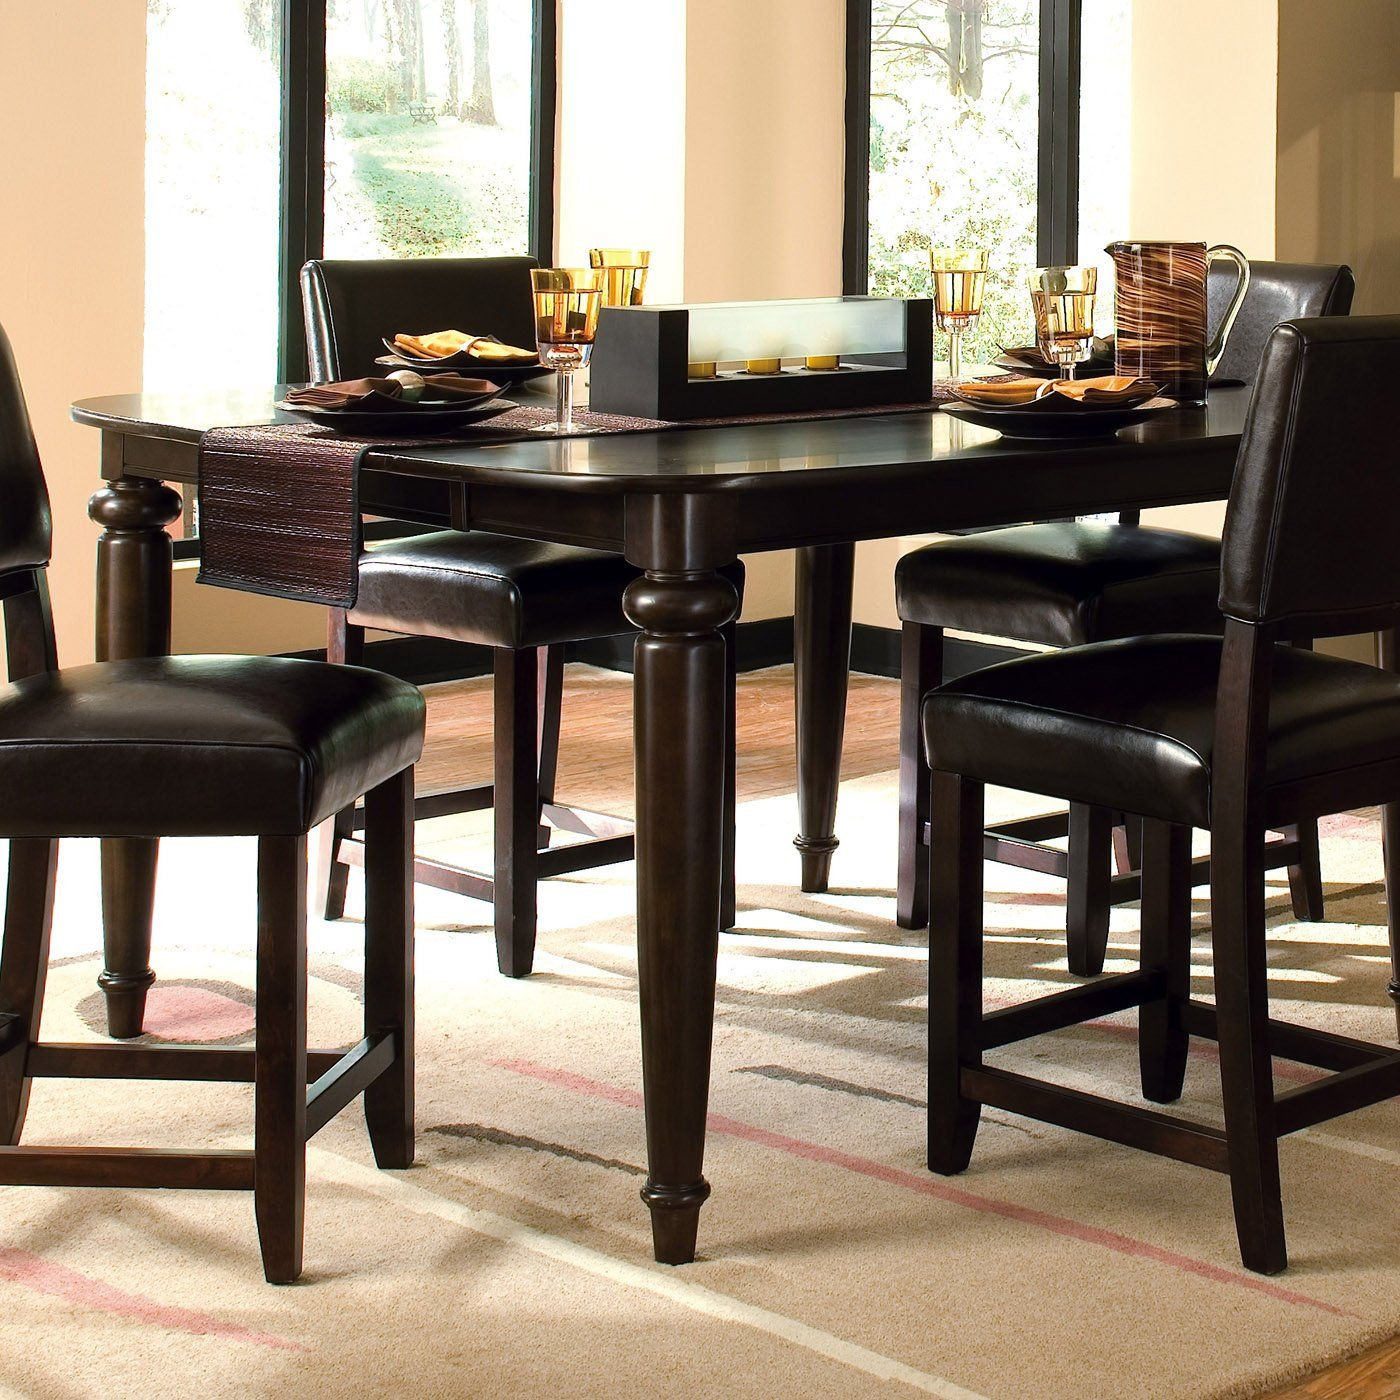 Best ideas about Tall Dining Table . Save or Pin Kincaid Furniture 46 058 Somerset Tall Dining Table Now.